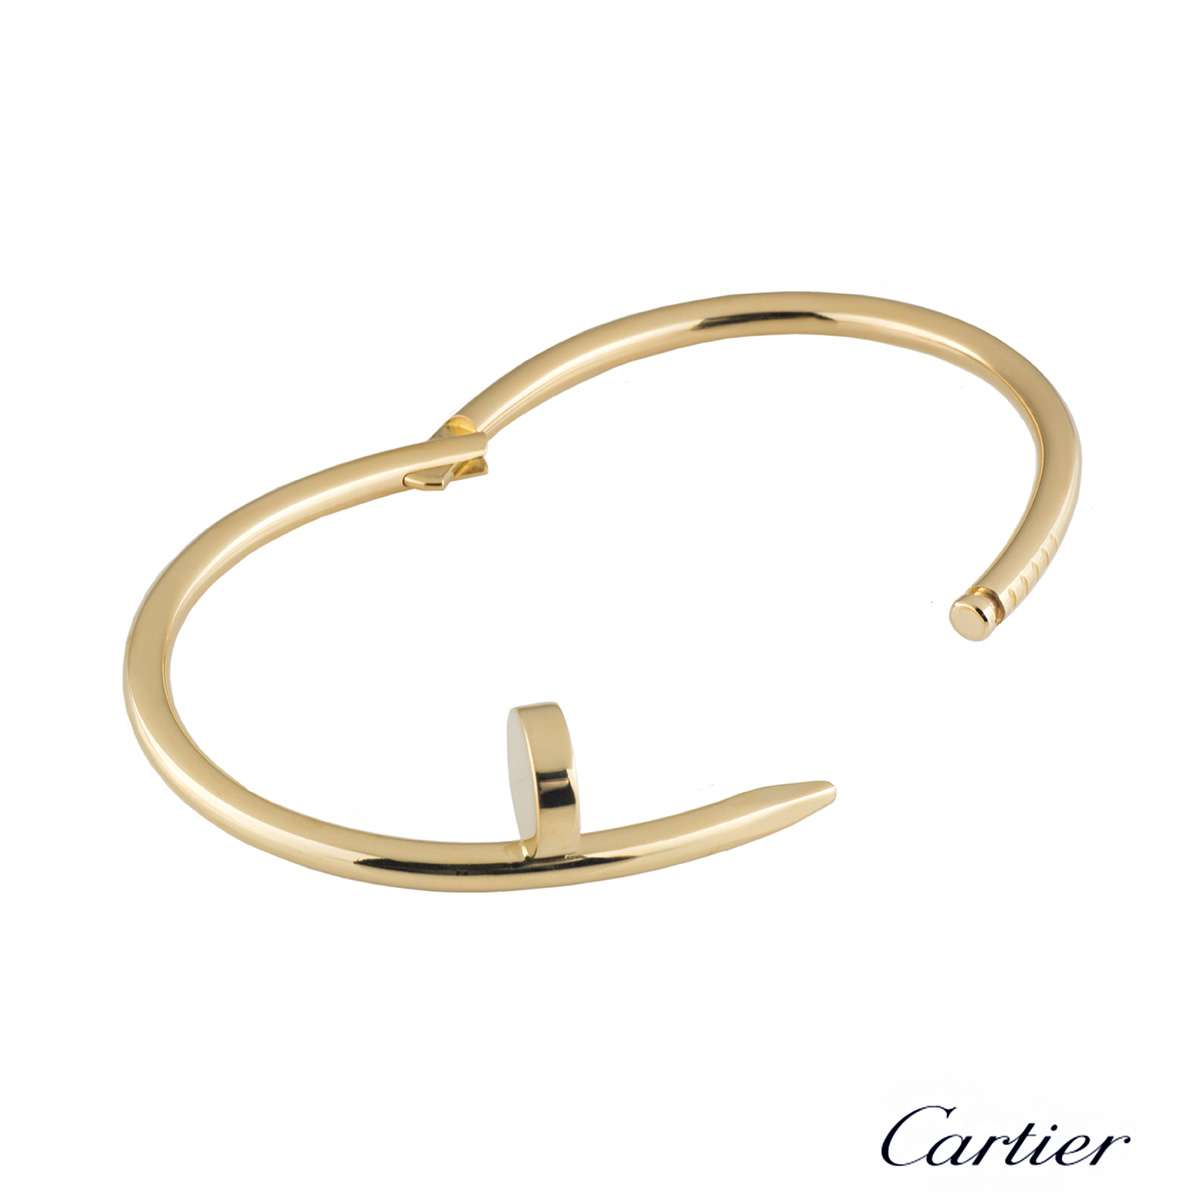 false paved bracelet scale new clou diamond s the cartiers crop cartierjusteunclou article juste classic un subsampling jewellery upscale cartier